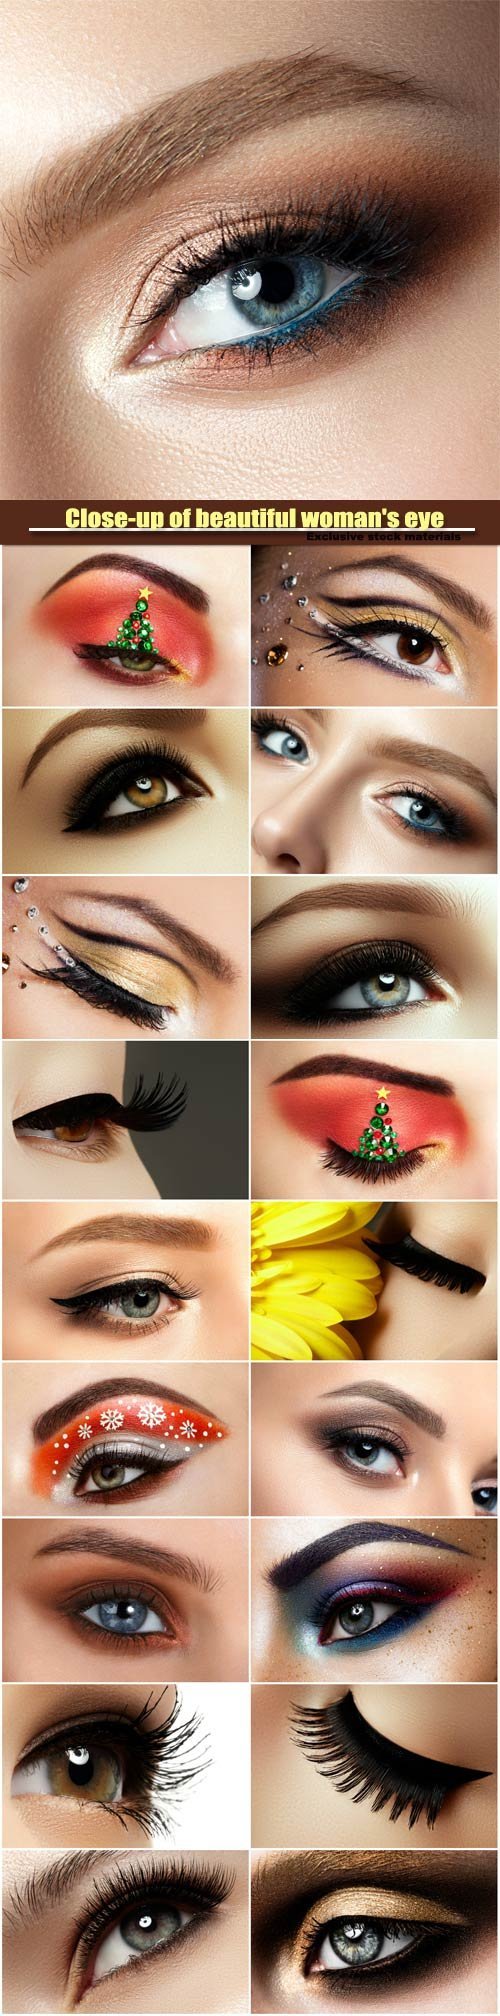 Close-up of beautiful woman's eye, colored eyeshadows, makeover christmas tree